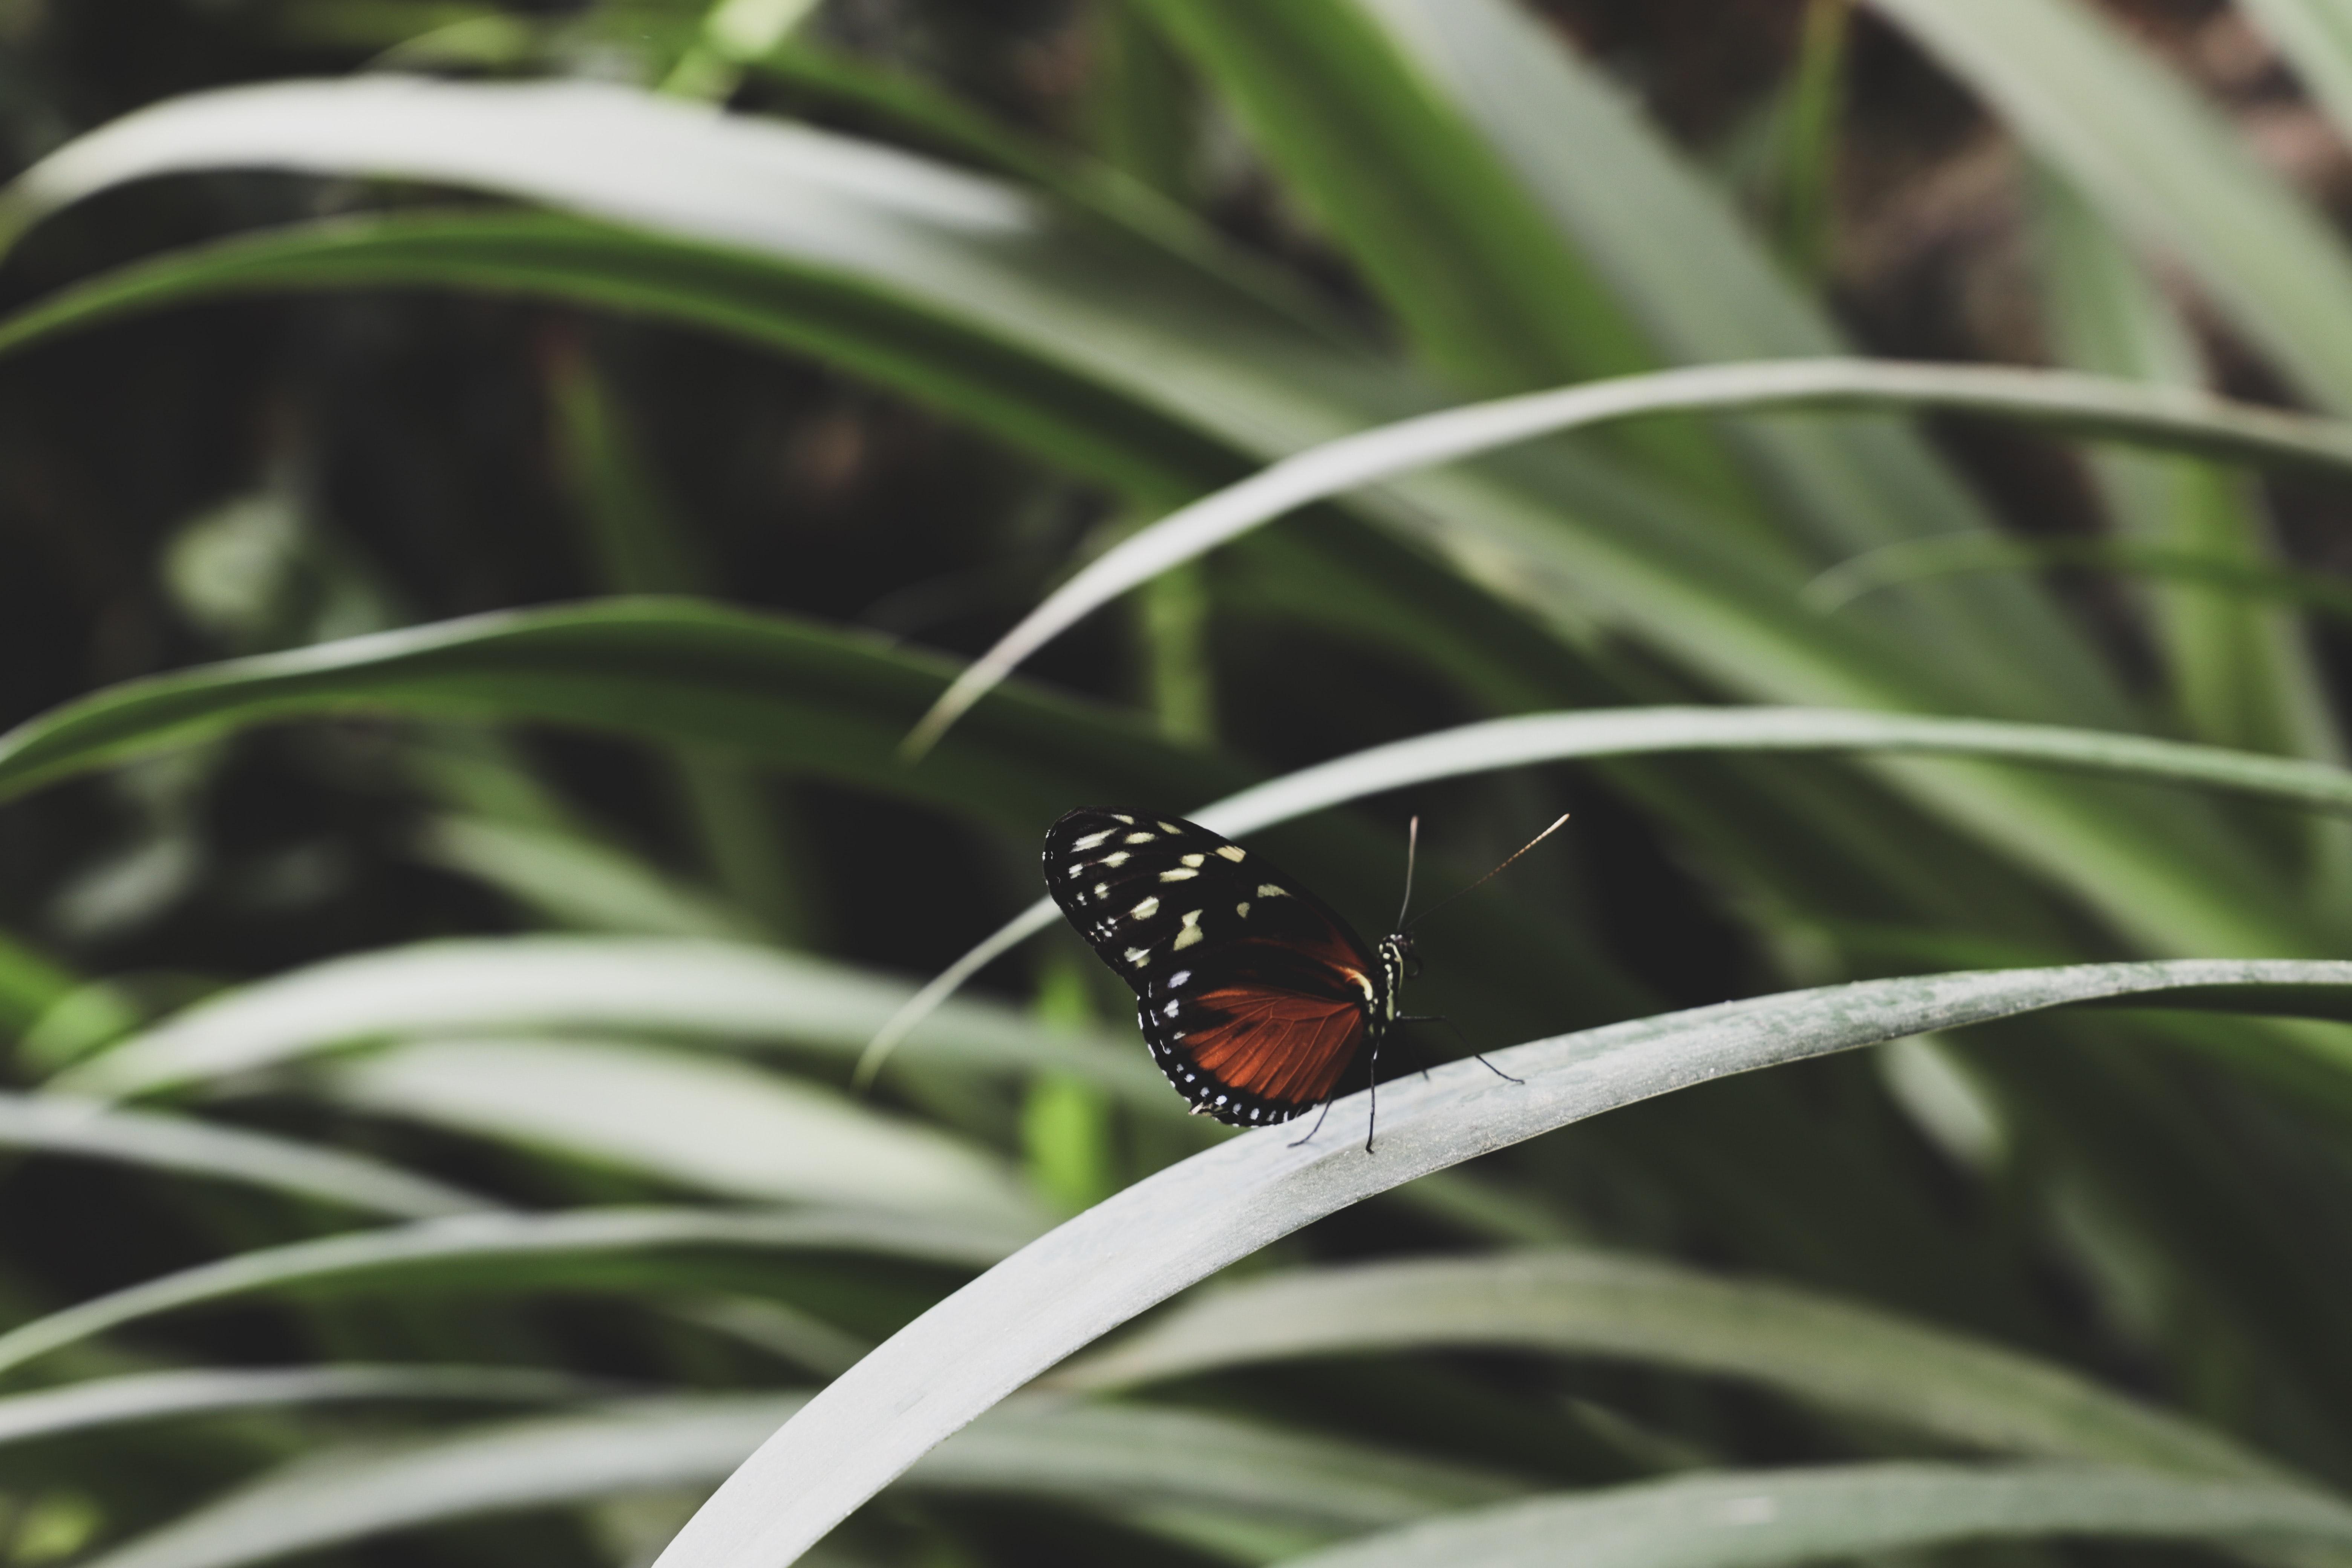 brown and black butterfly on leaf